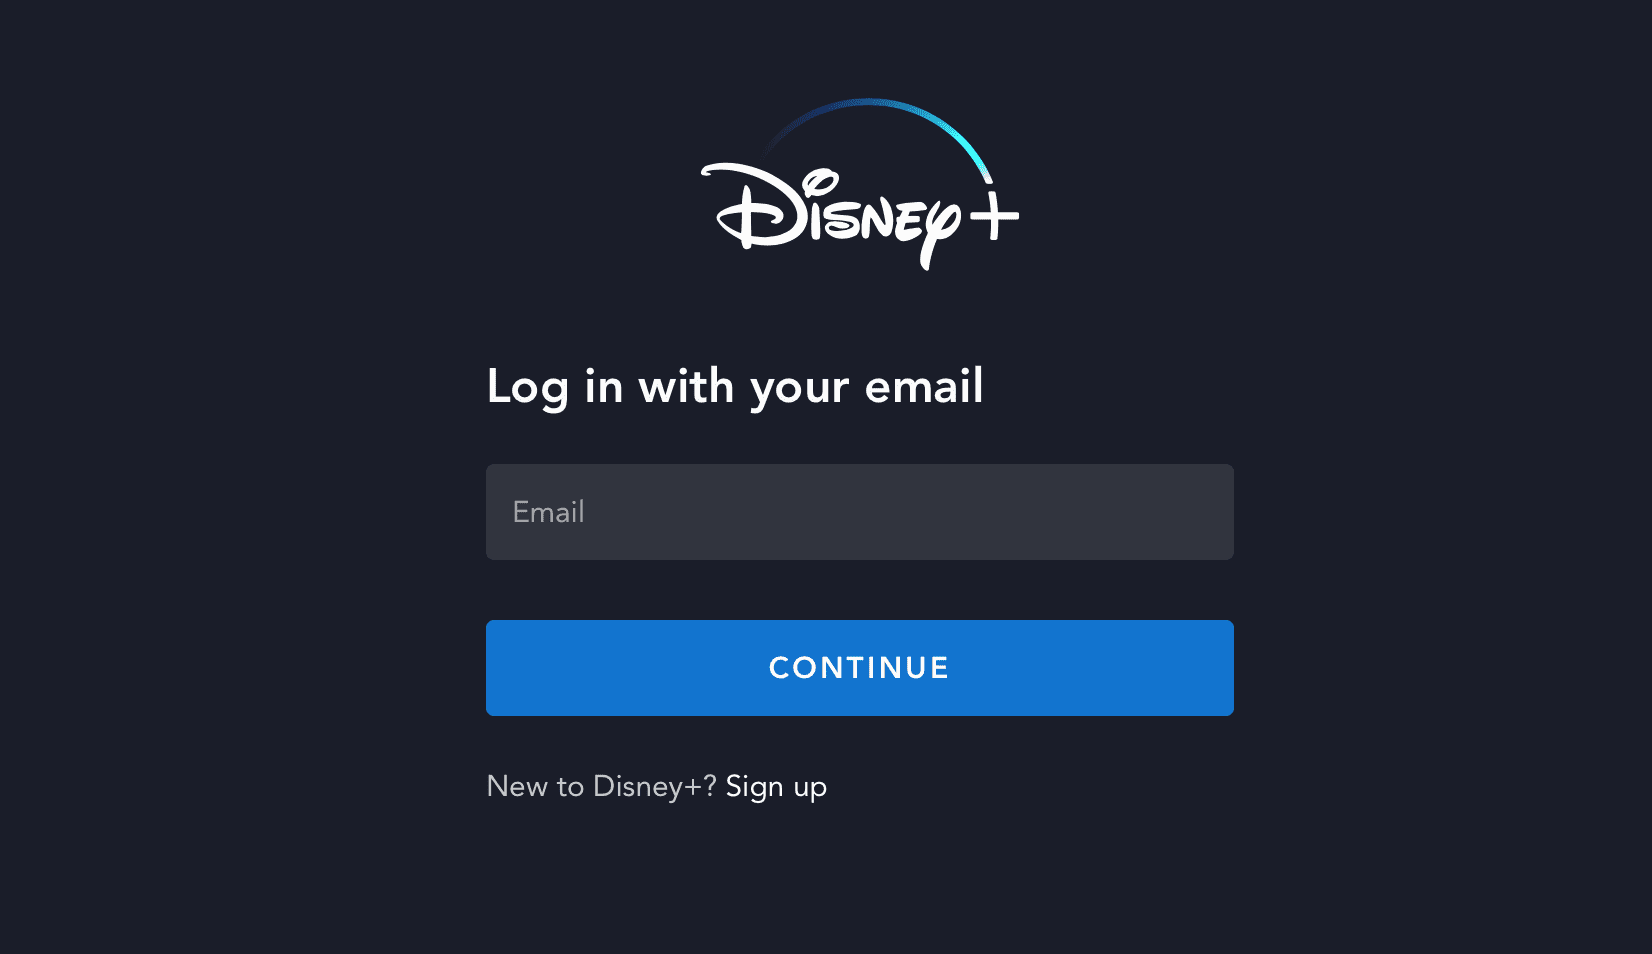 DisneyPlus.com/Login